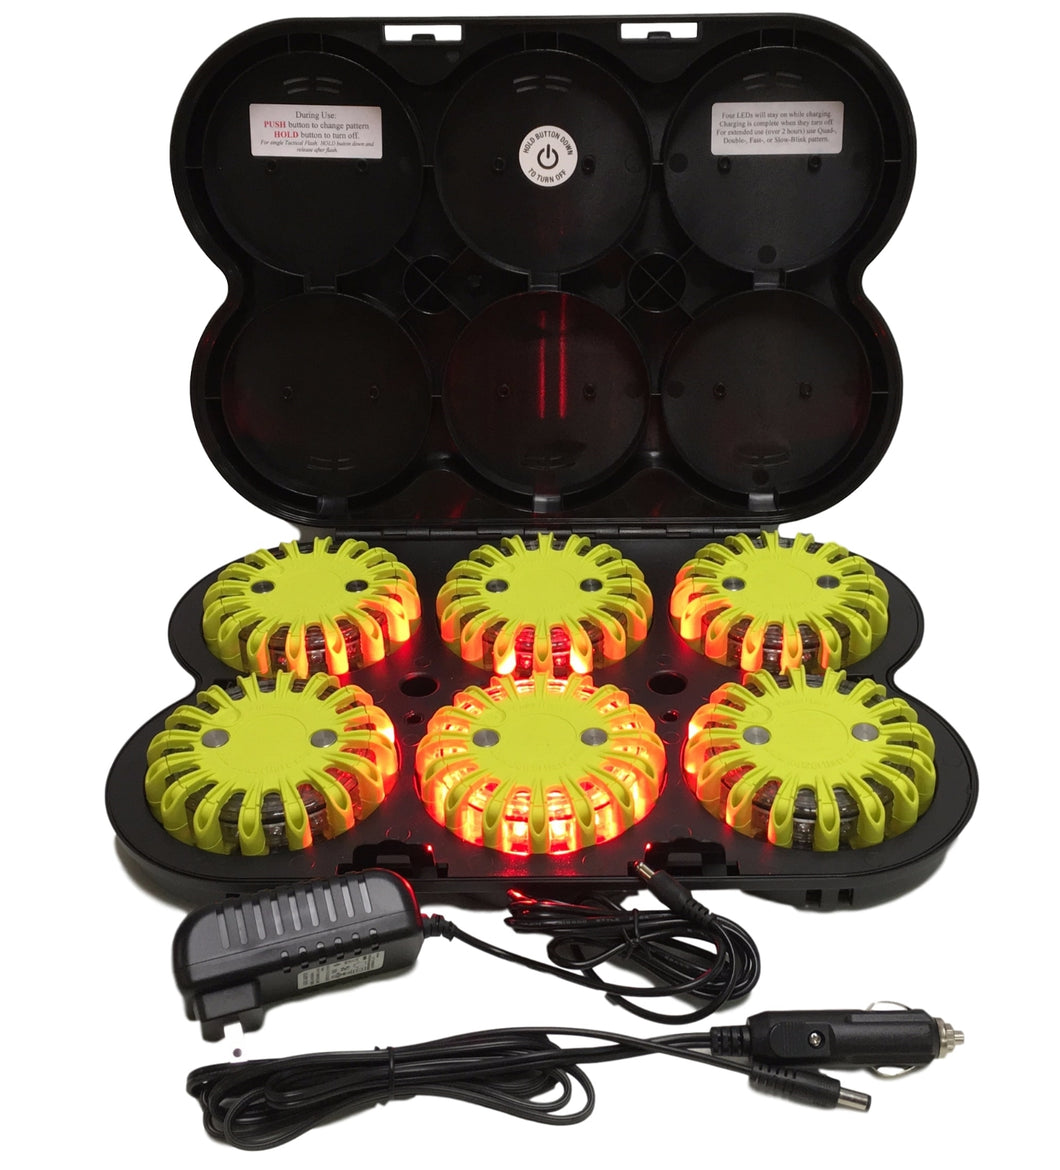 Rechargeable 6-Pack System